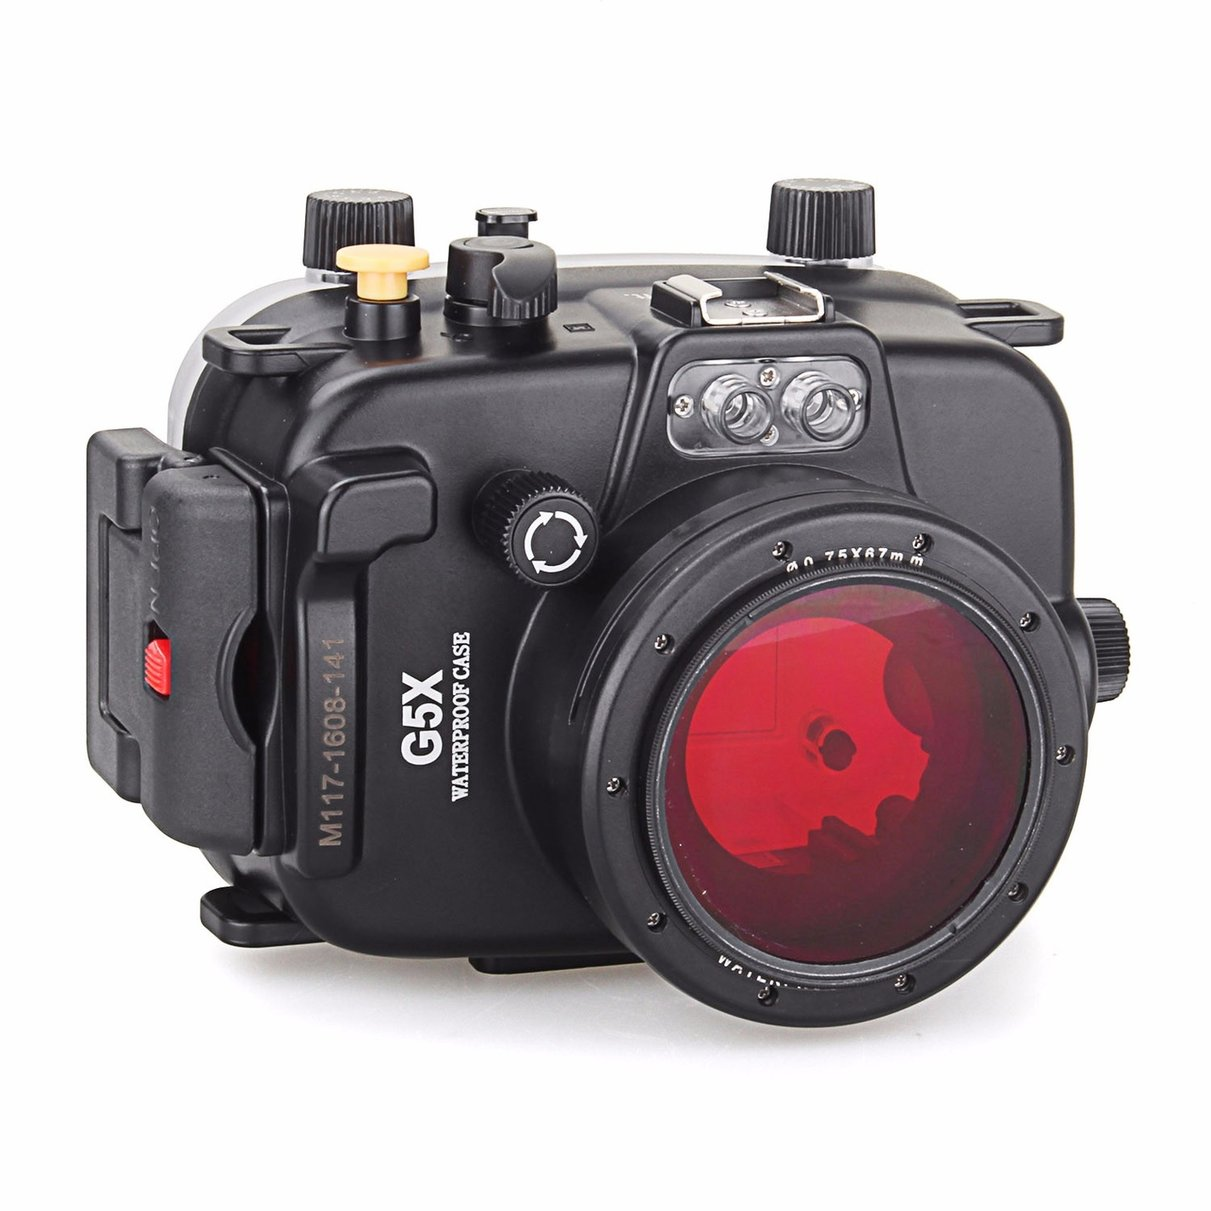 Free ship DHL Meikon 40m Underwater Waterproof Camera Housing Case for Canon G5X + 67mm Red Filter for gift meikon 40m 130ft underwater waterproof camera housing case for sony a6000 16 50 lens red filter